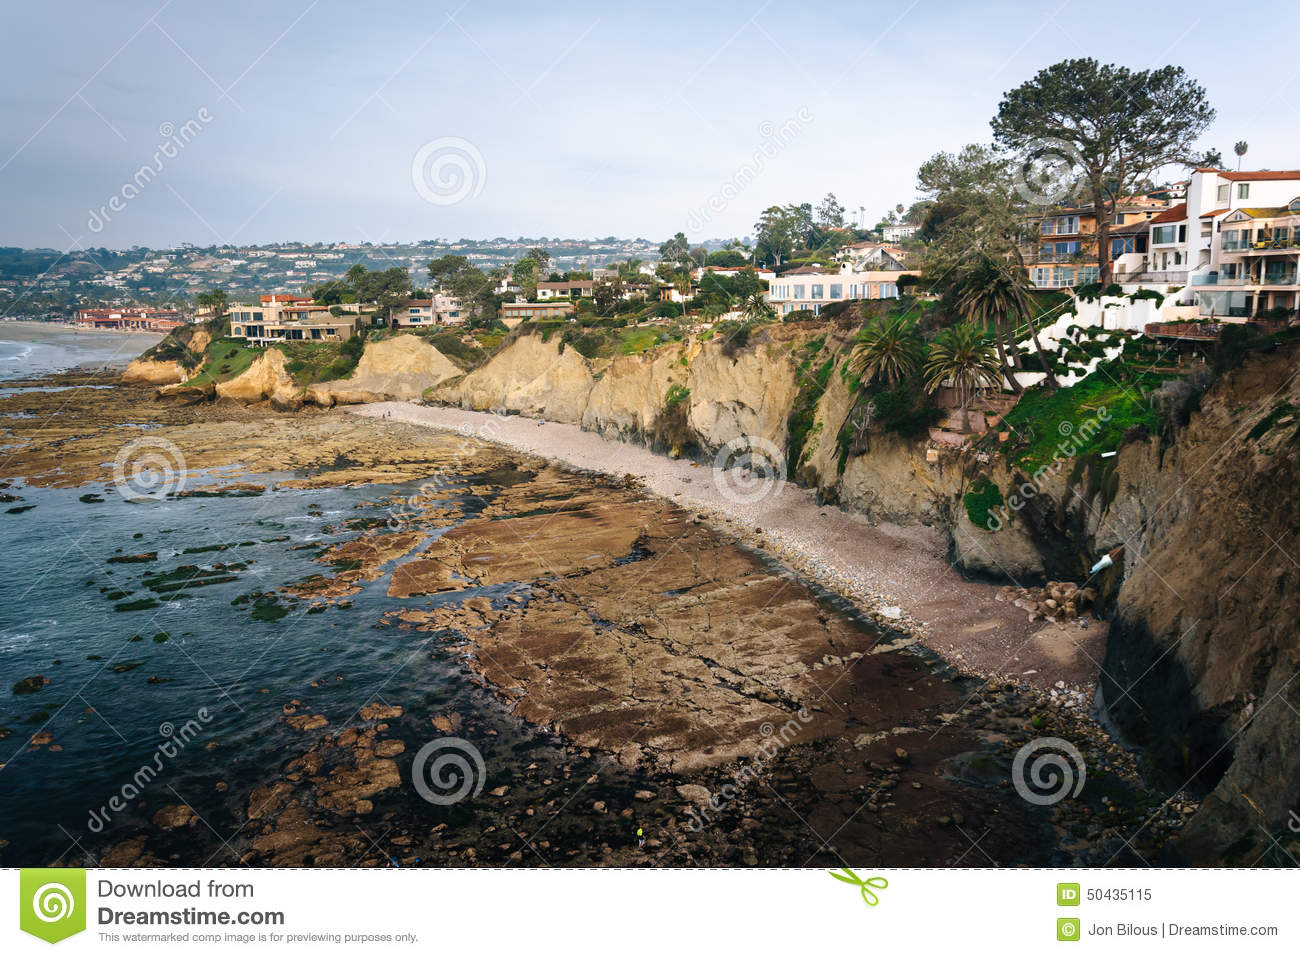 House on cliffs along the Pacific Ocean in La Jolla, California.